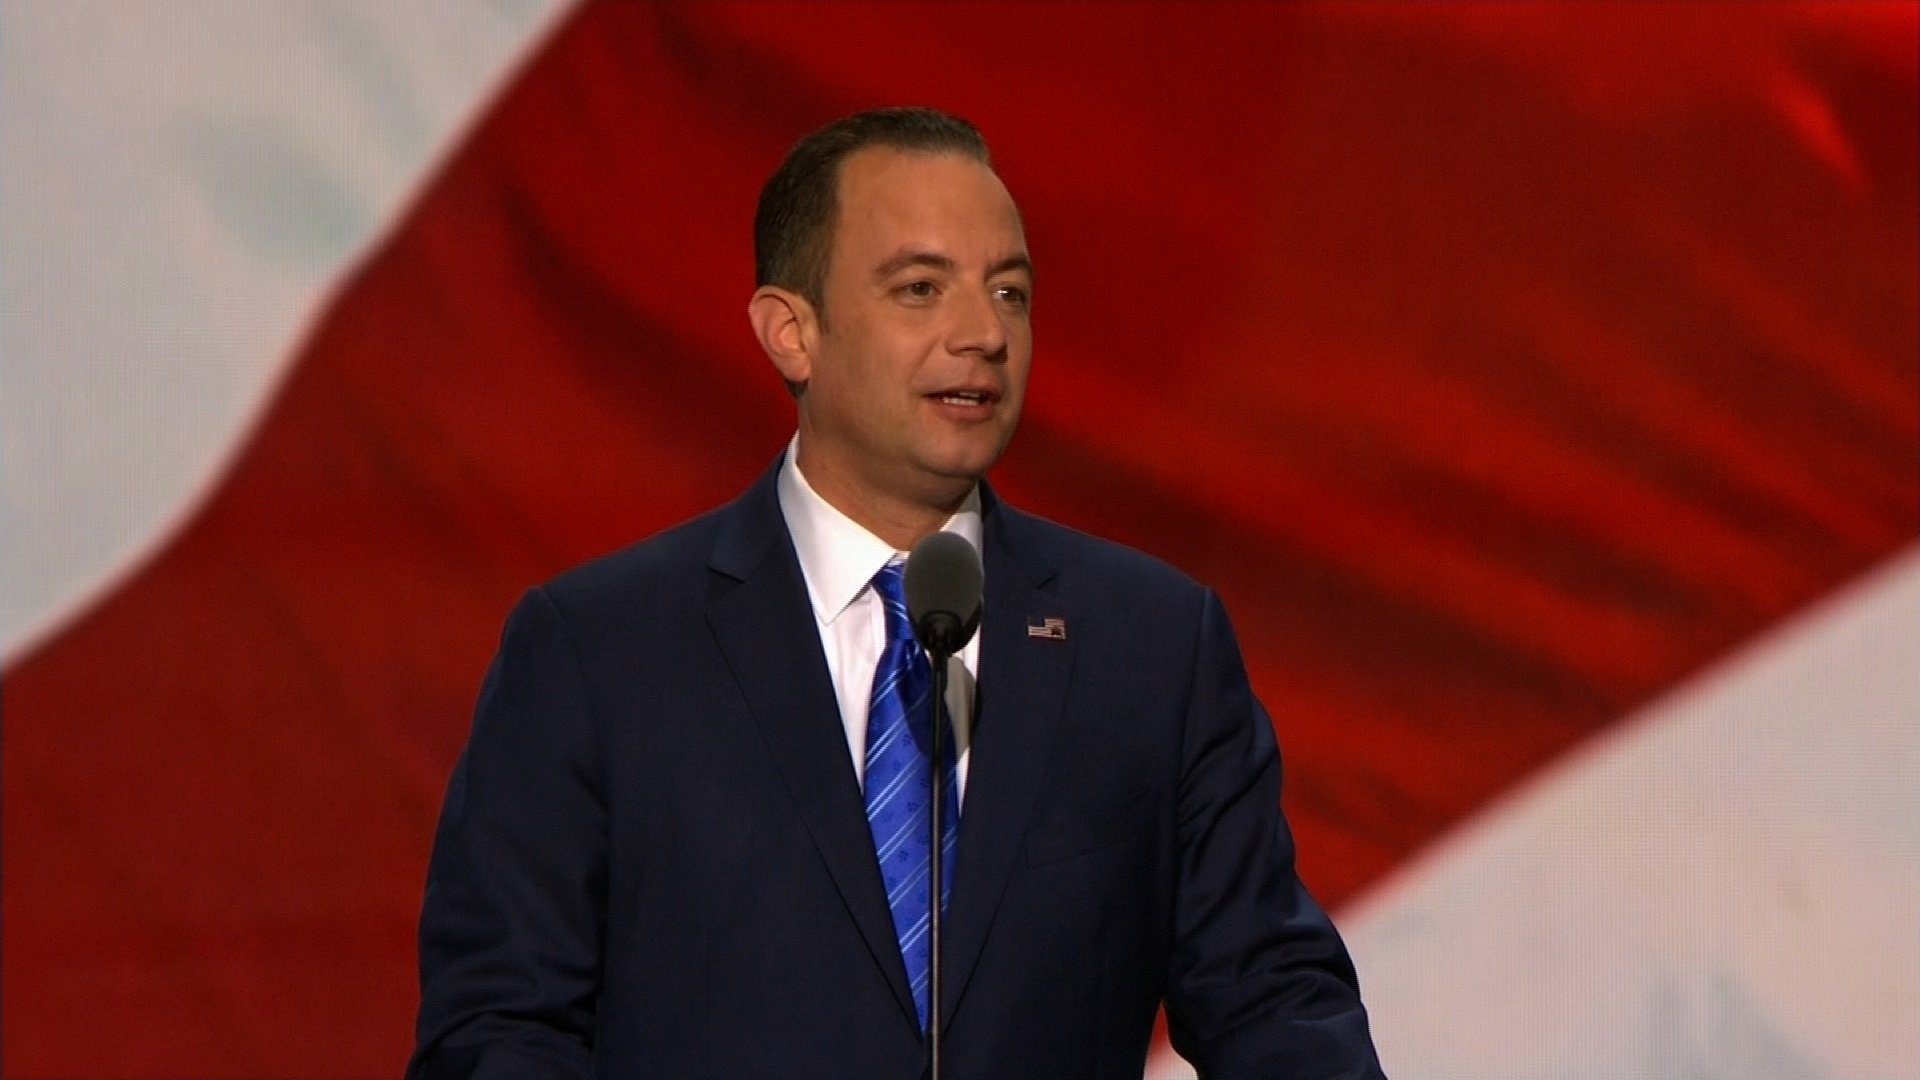 Paul Ryan Praises Priebus, Congratulates Kelly as New WH Chief of Staff